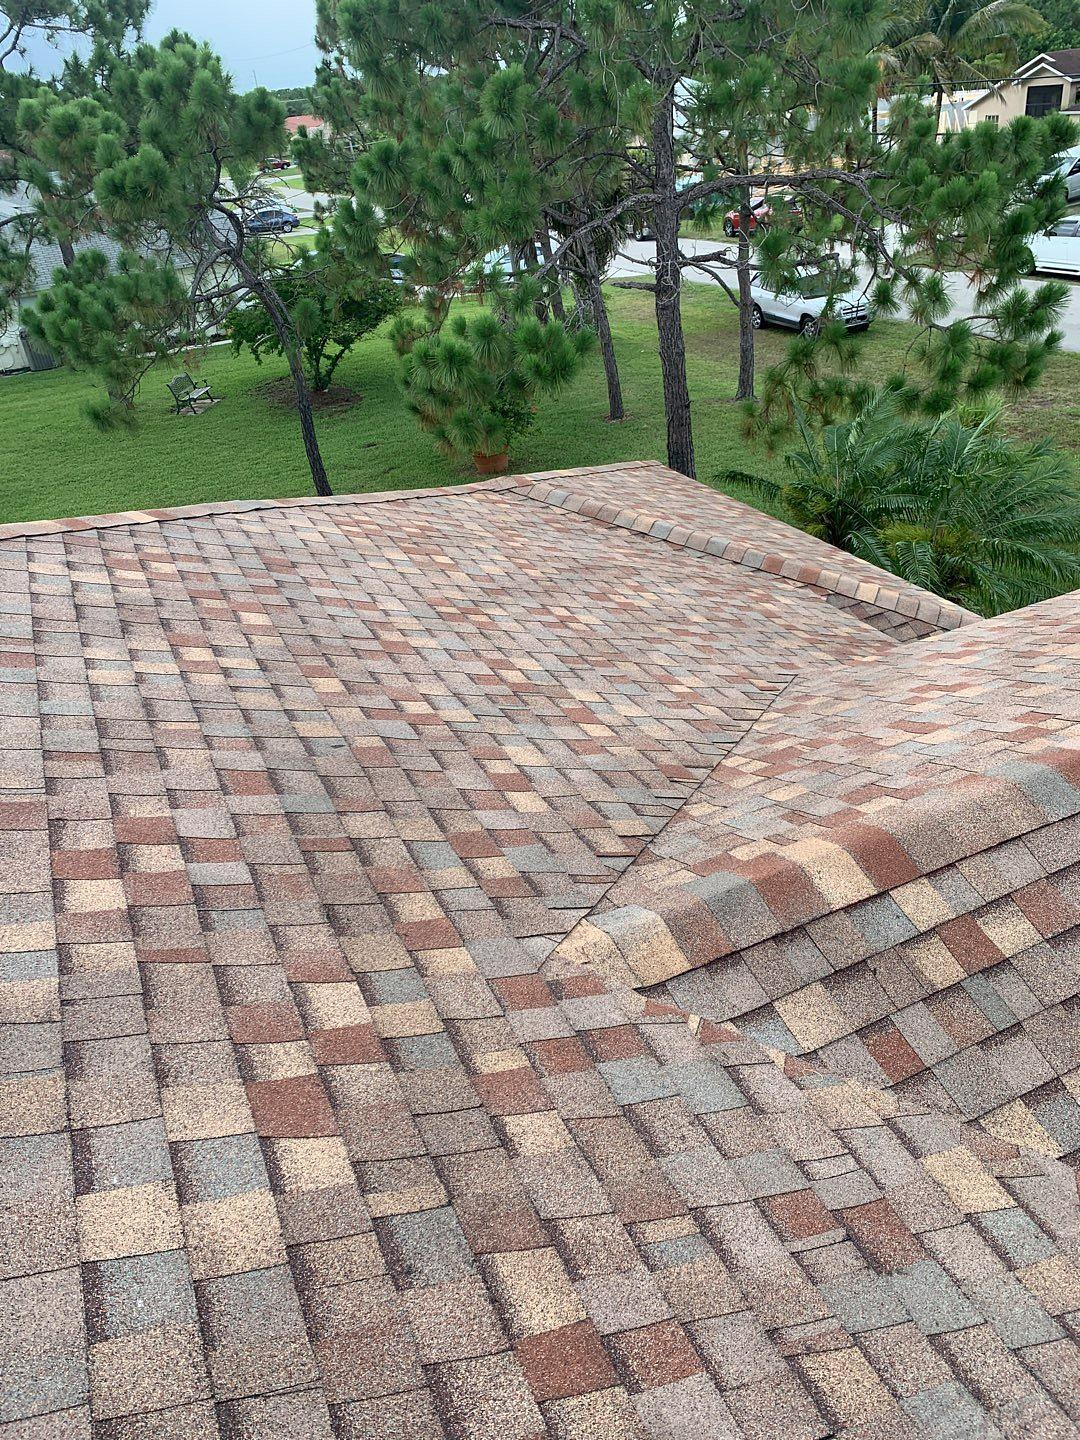 Roof replaced with Tamko Architectural shingles in Palm City